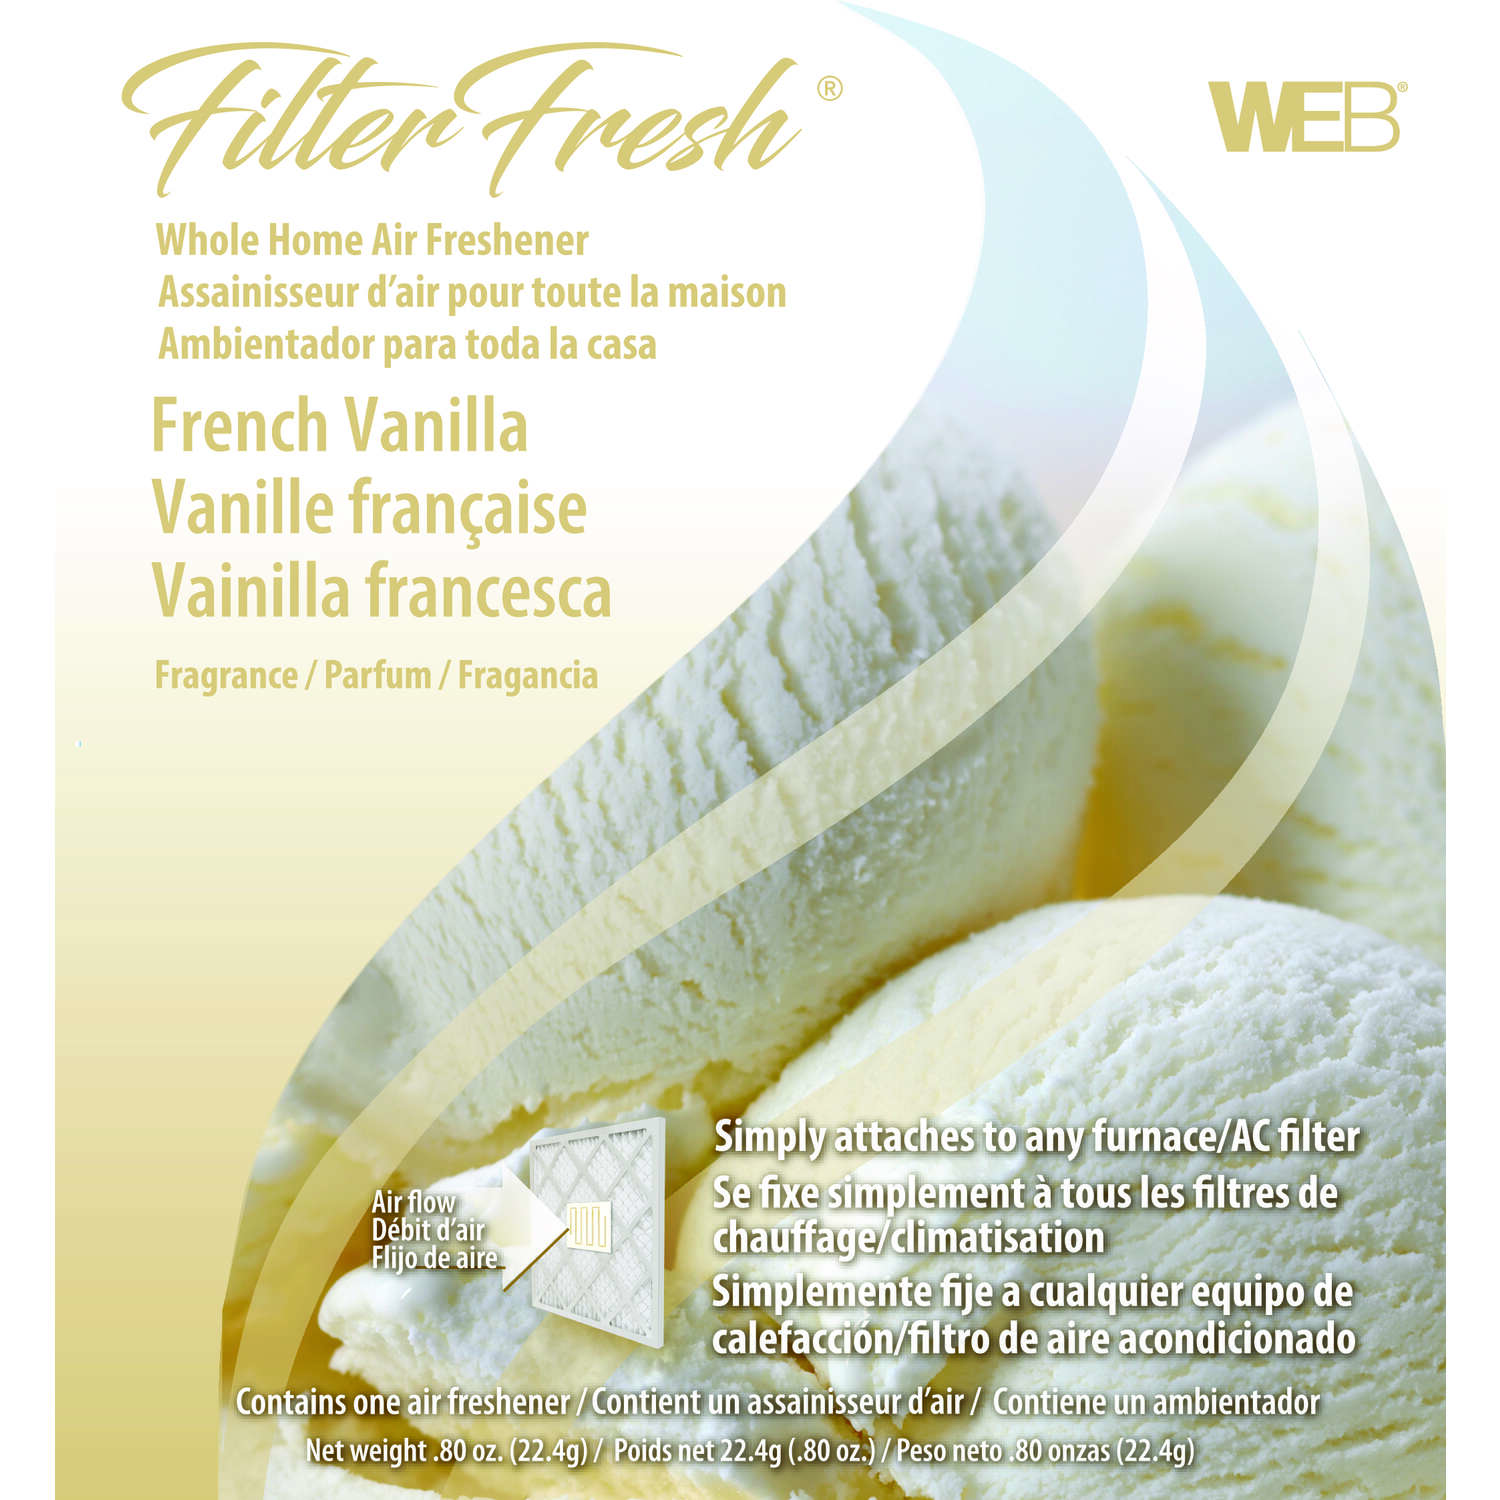 Web  FilterFresh  French Vanilla Scent Air Freshener  0.8 oz. Gel